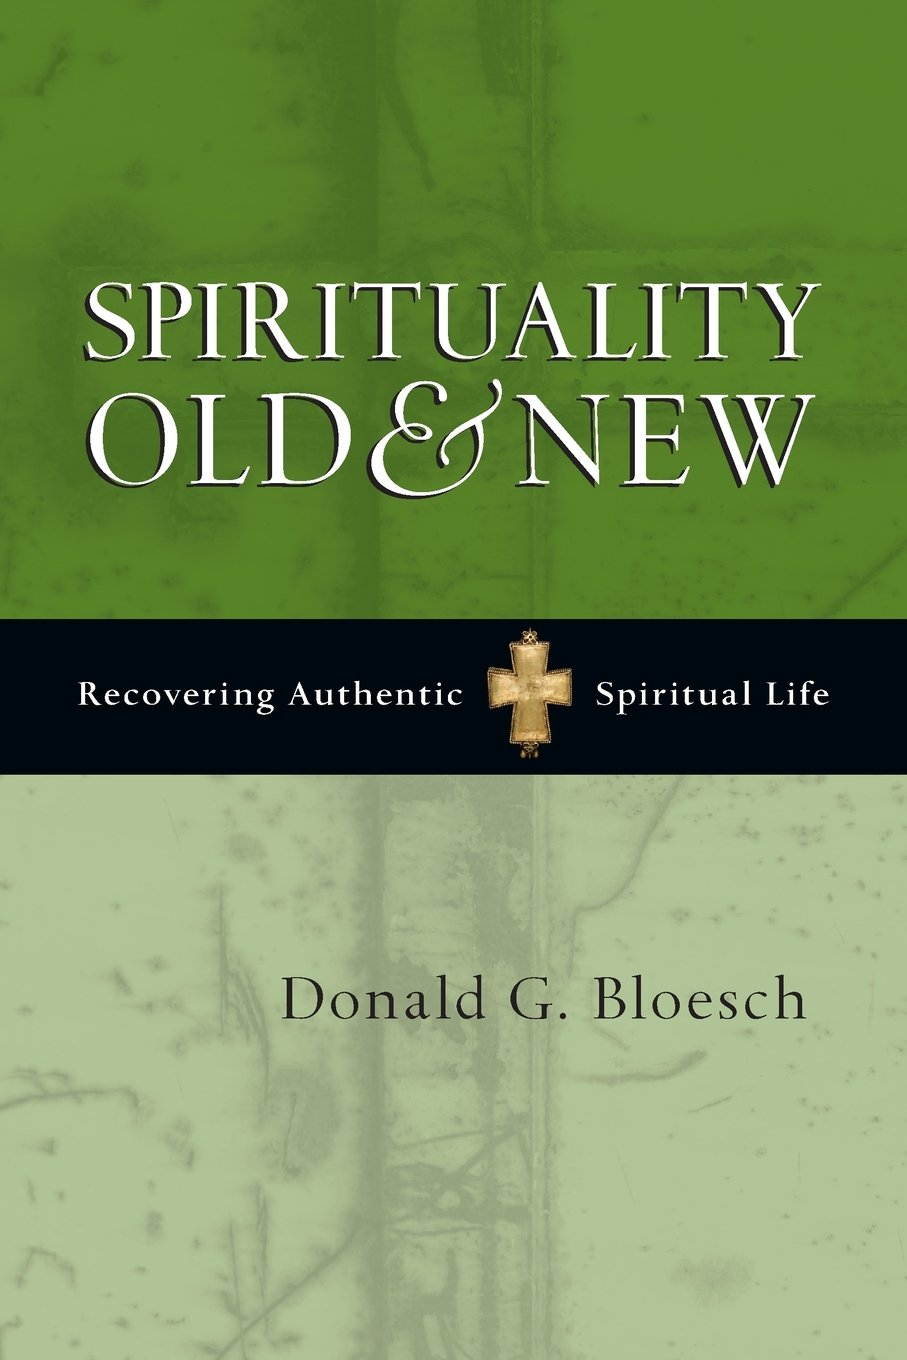 Spirituality Old & New: Recovering Authentic Spiritual Life ebook